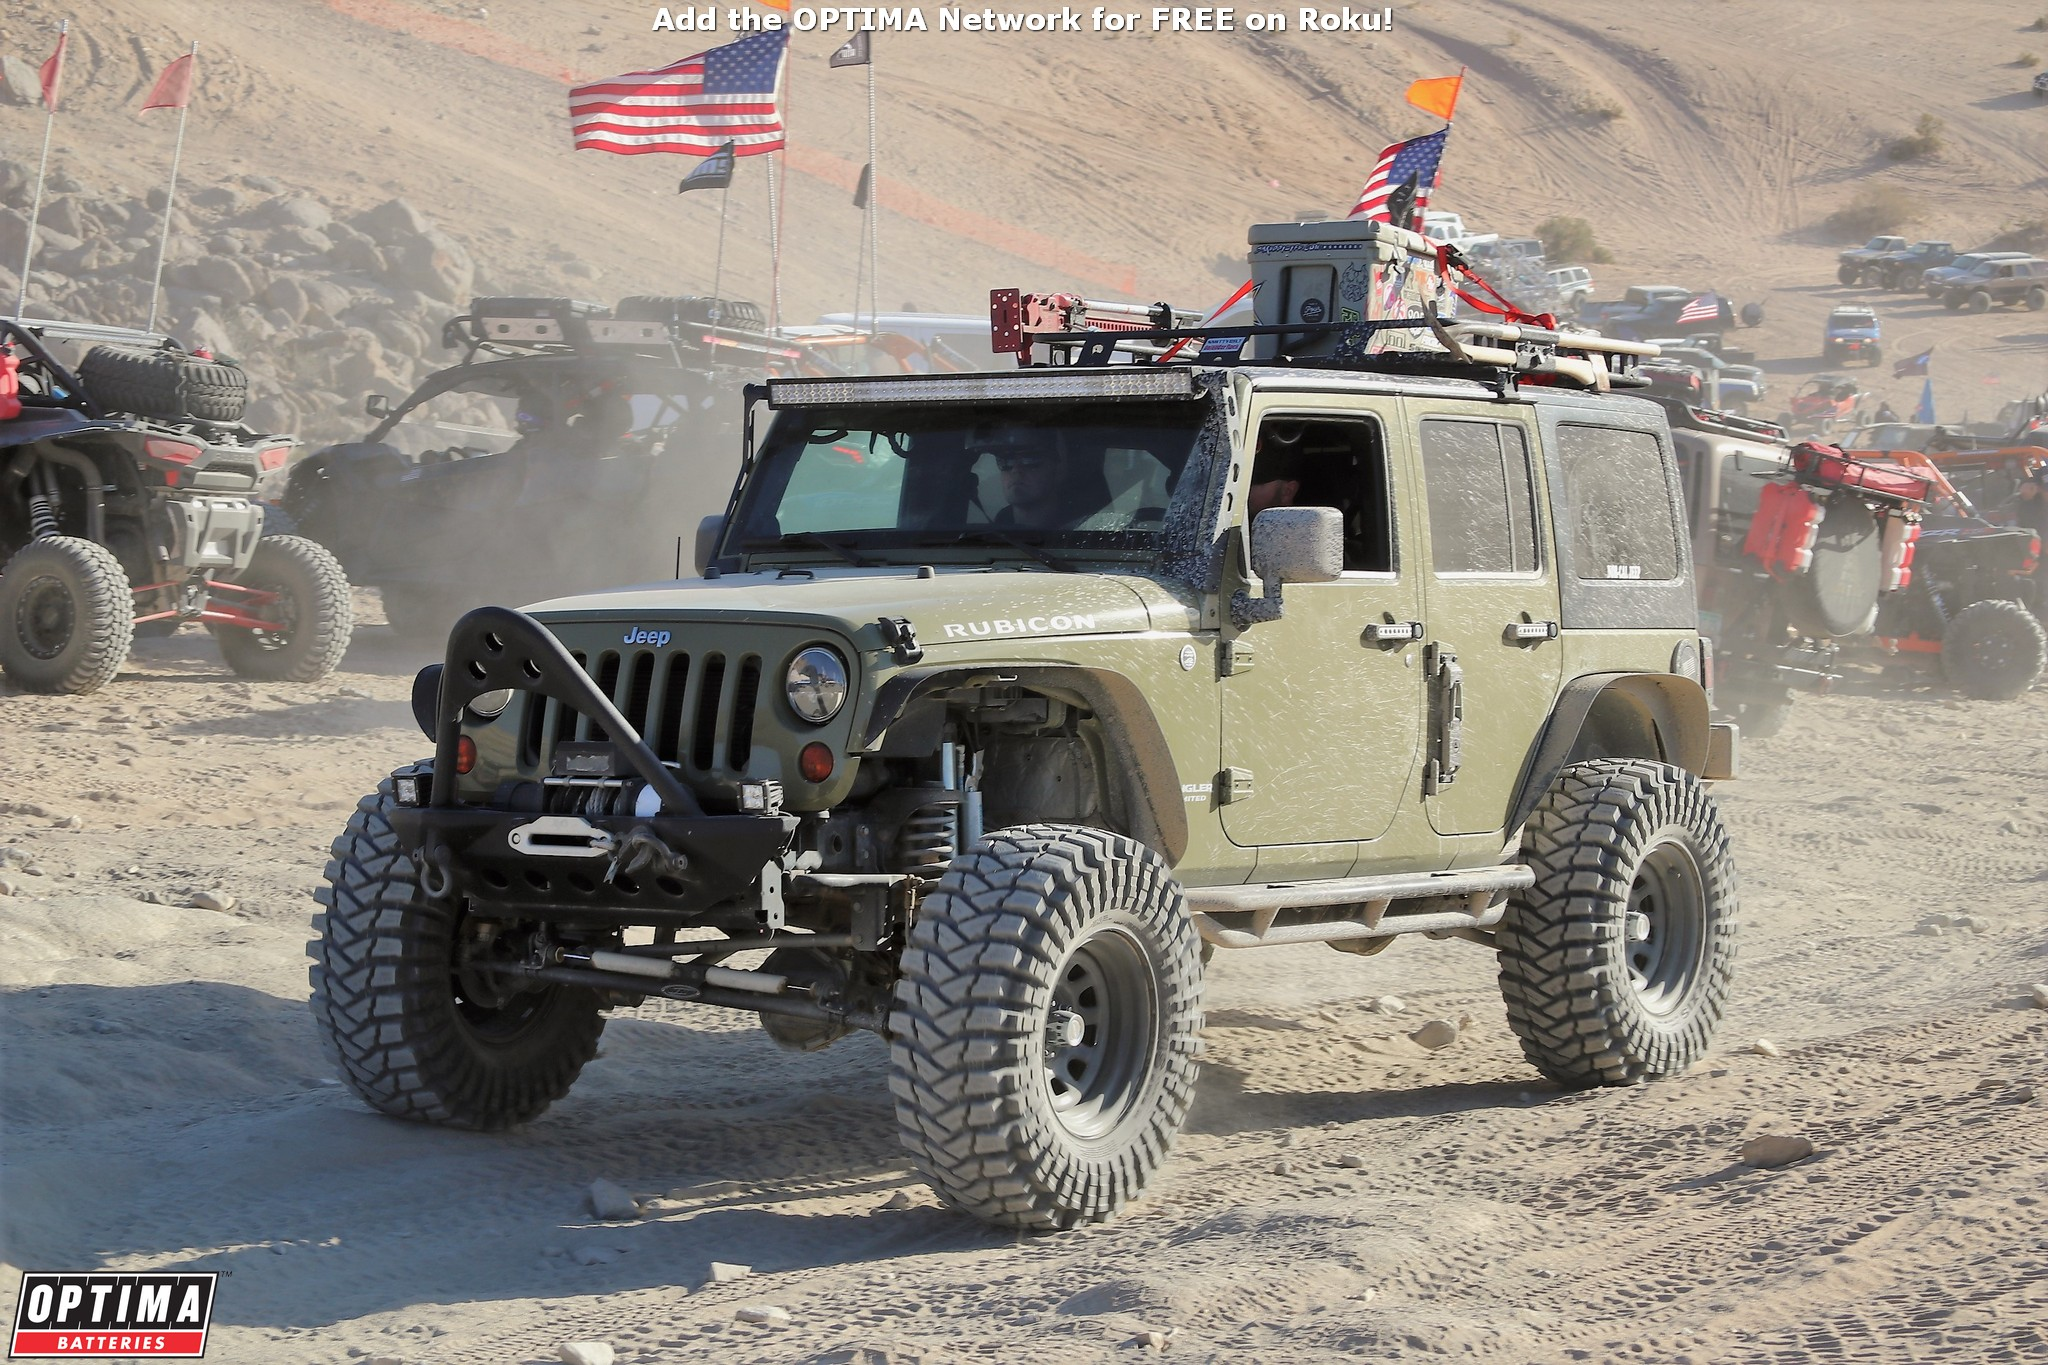 How much does a Jeep Wrangler battery cost?